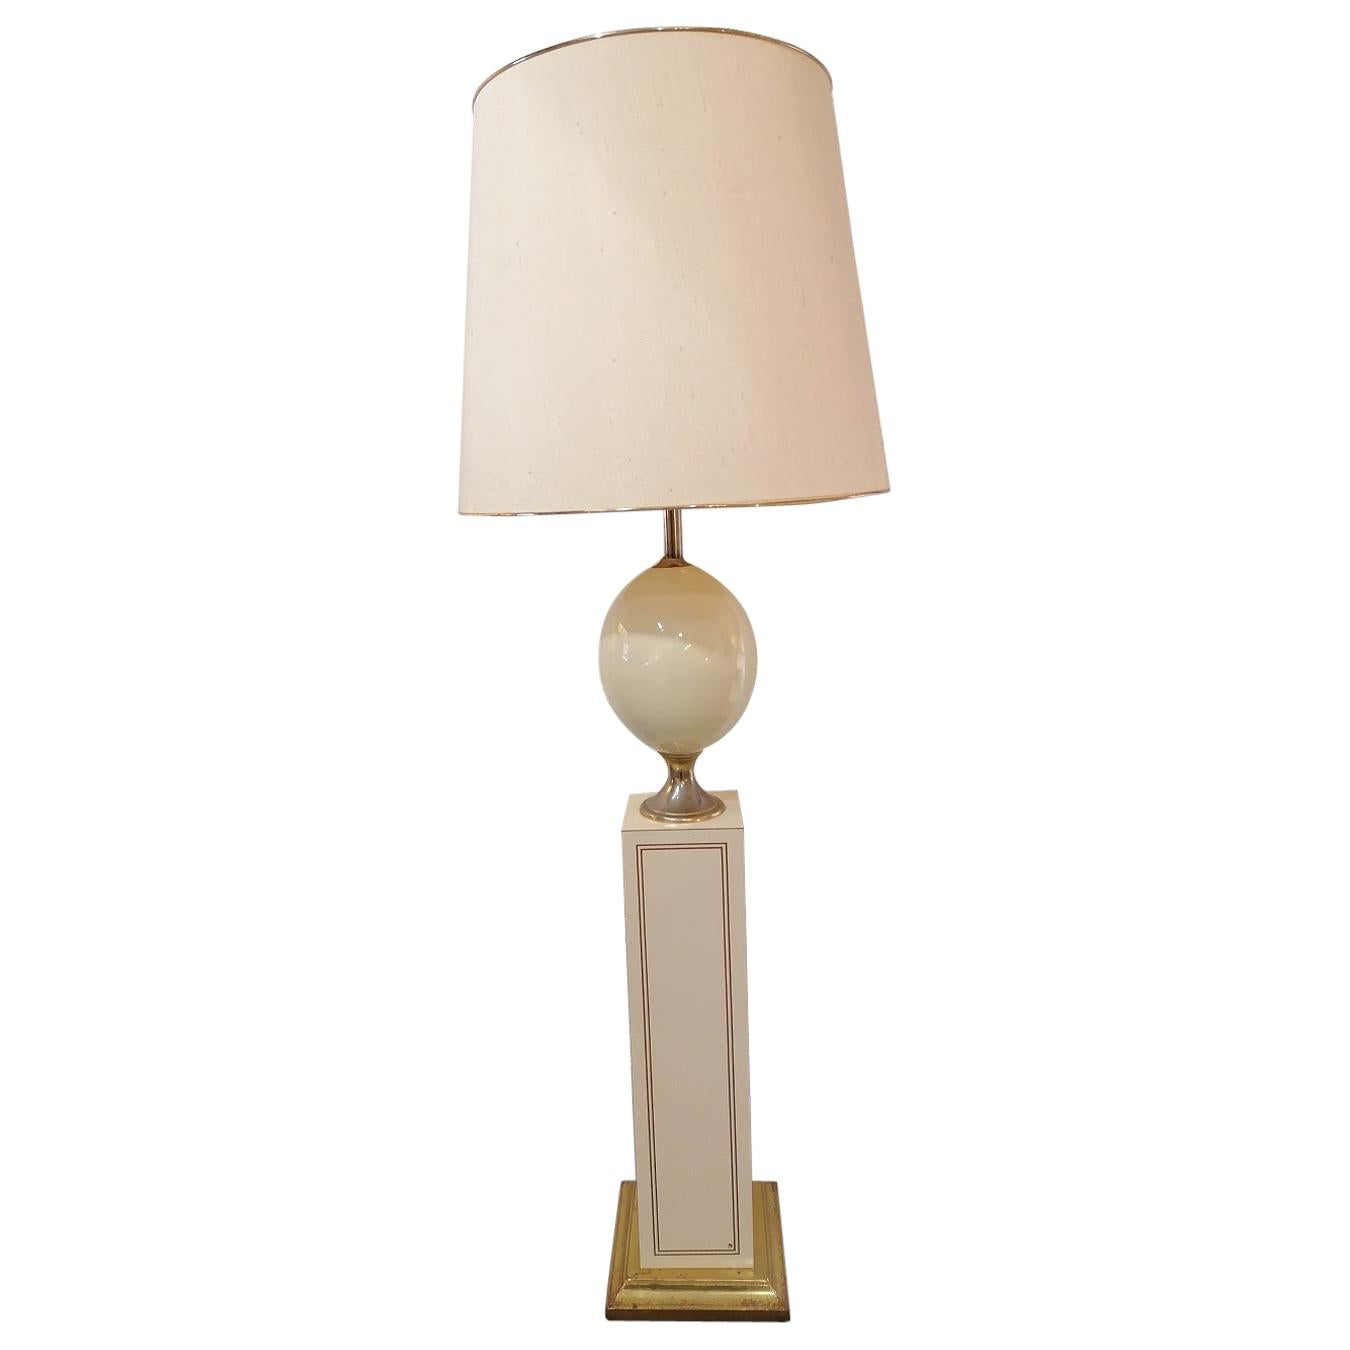 French Floor Lamp Maison Le Dauphin 1980 Lacquer and Brass